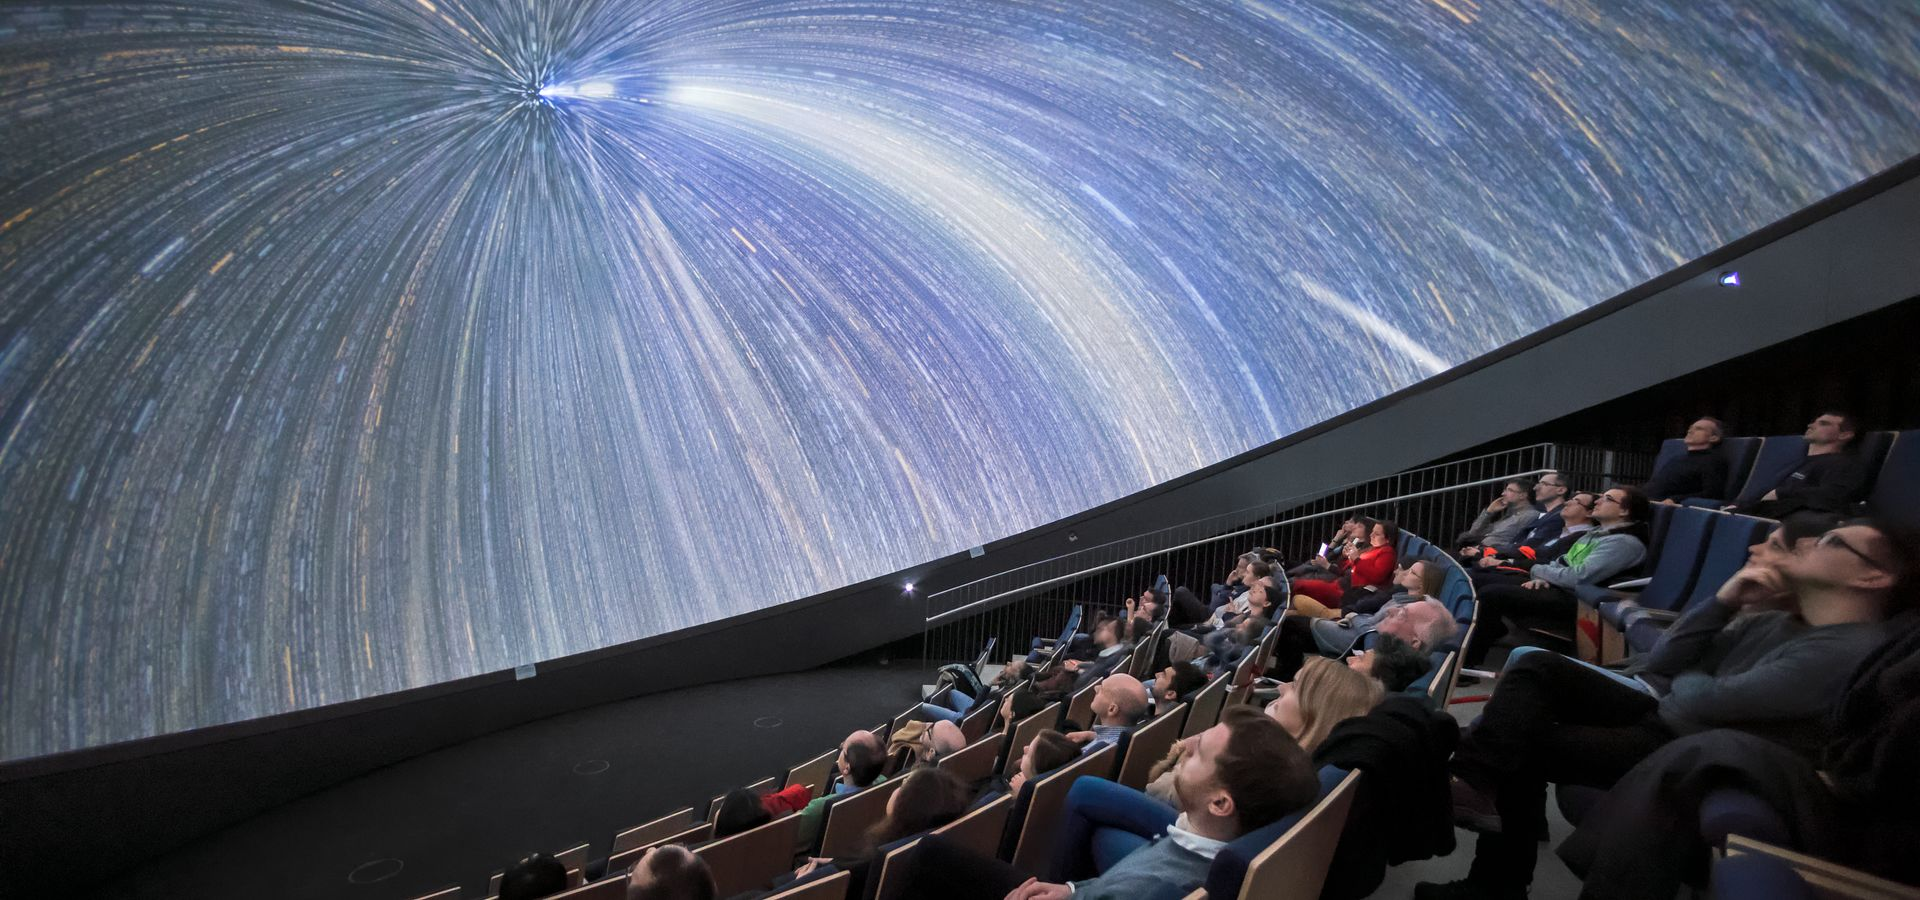 How to Install a Planetarium